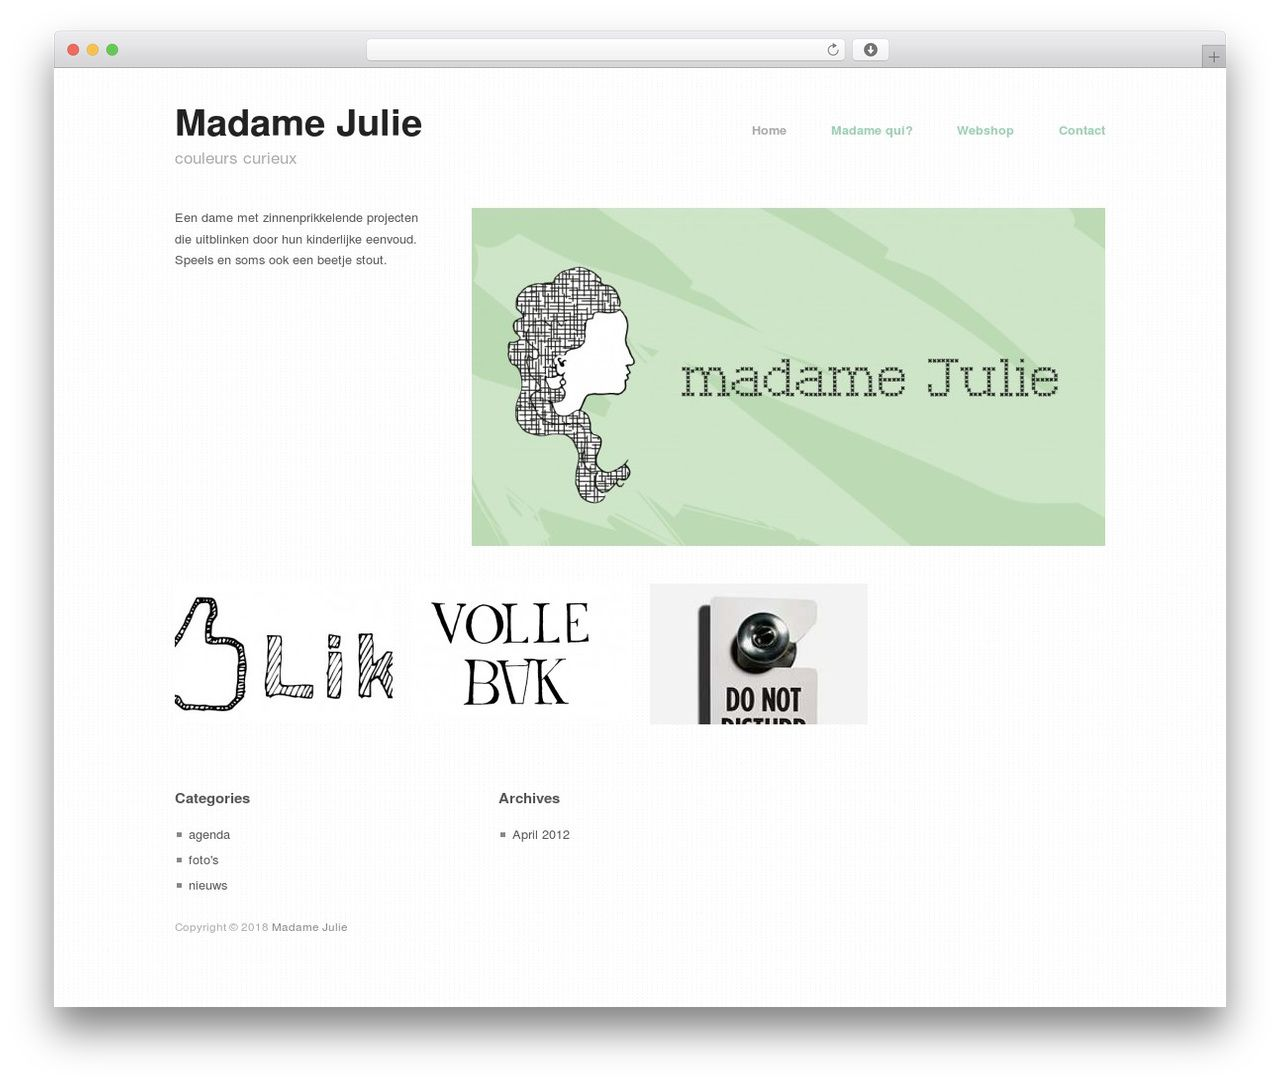 Hatch Wordpress Theme Madamejulie Com Wordpress Theme Wordpress Template Wordpress